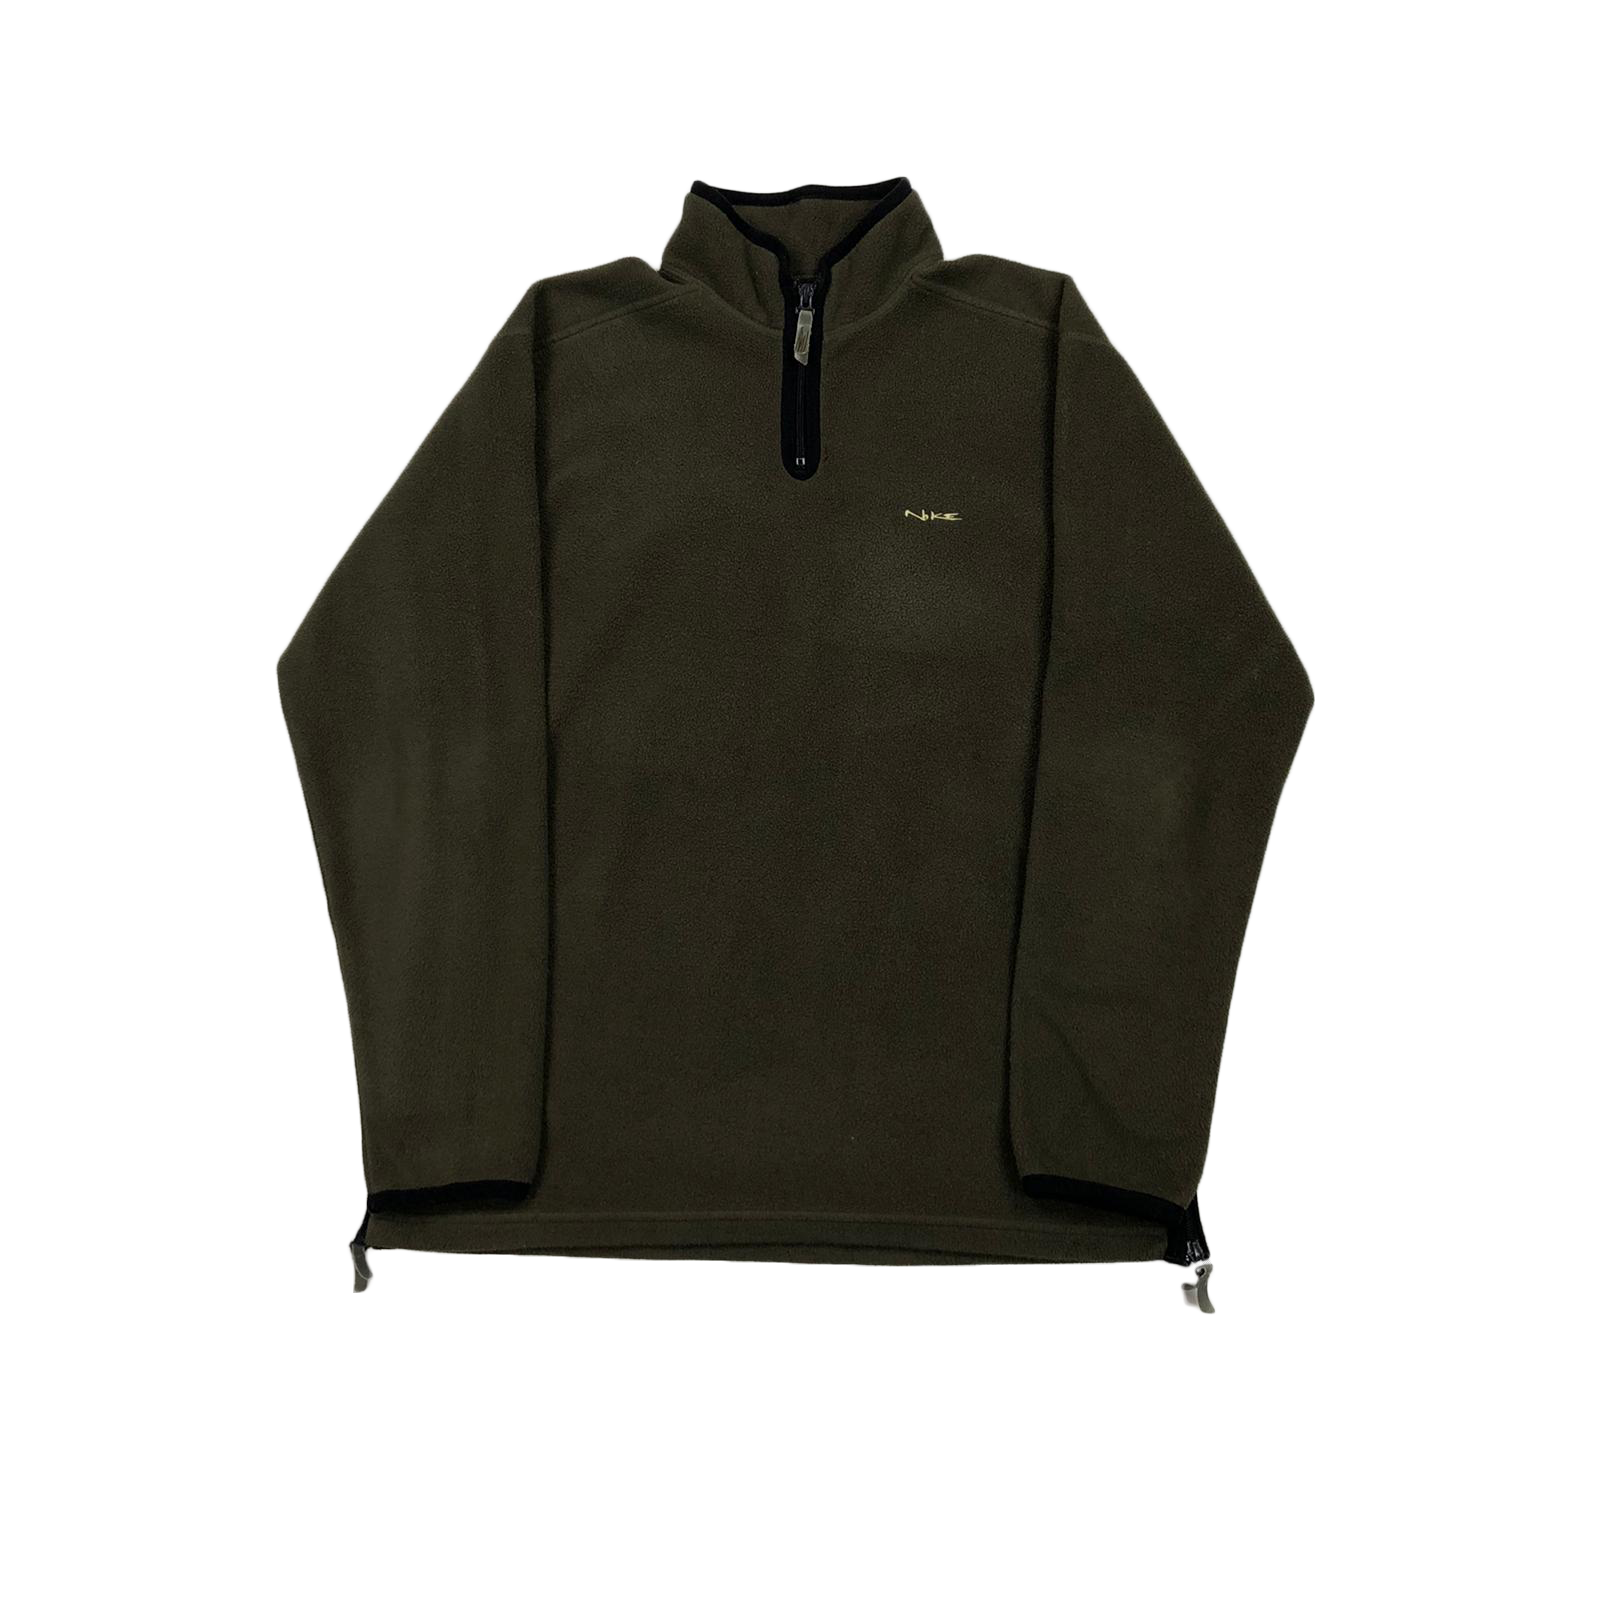 Nike 1/4 zip fleece